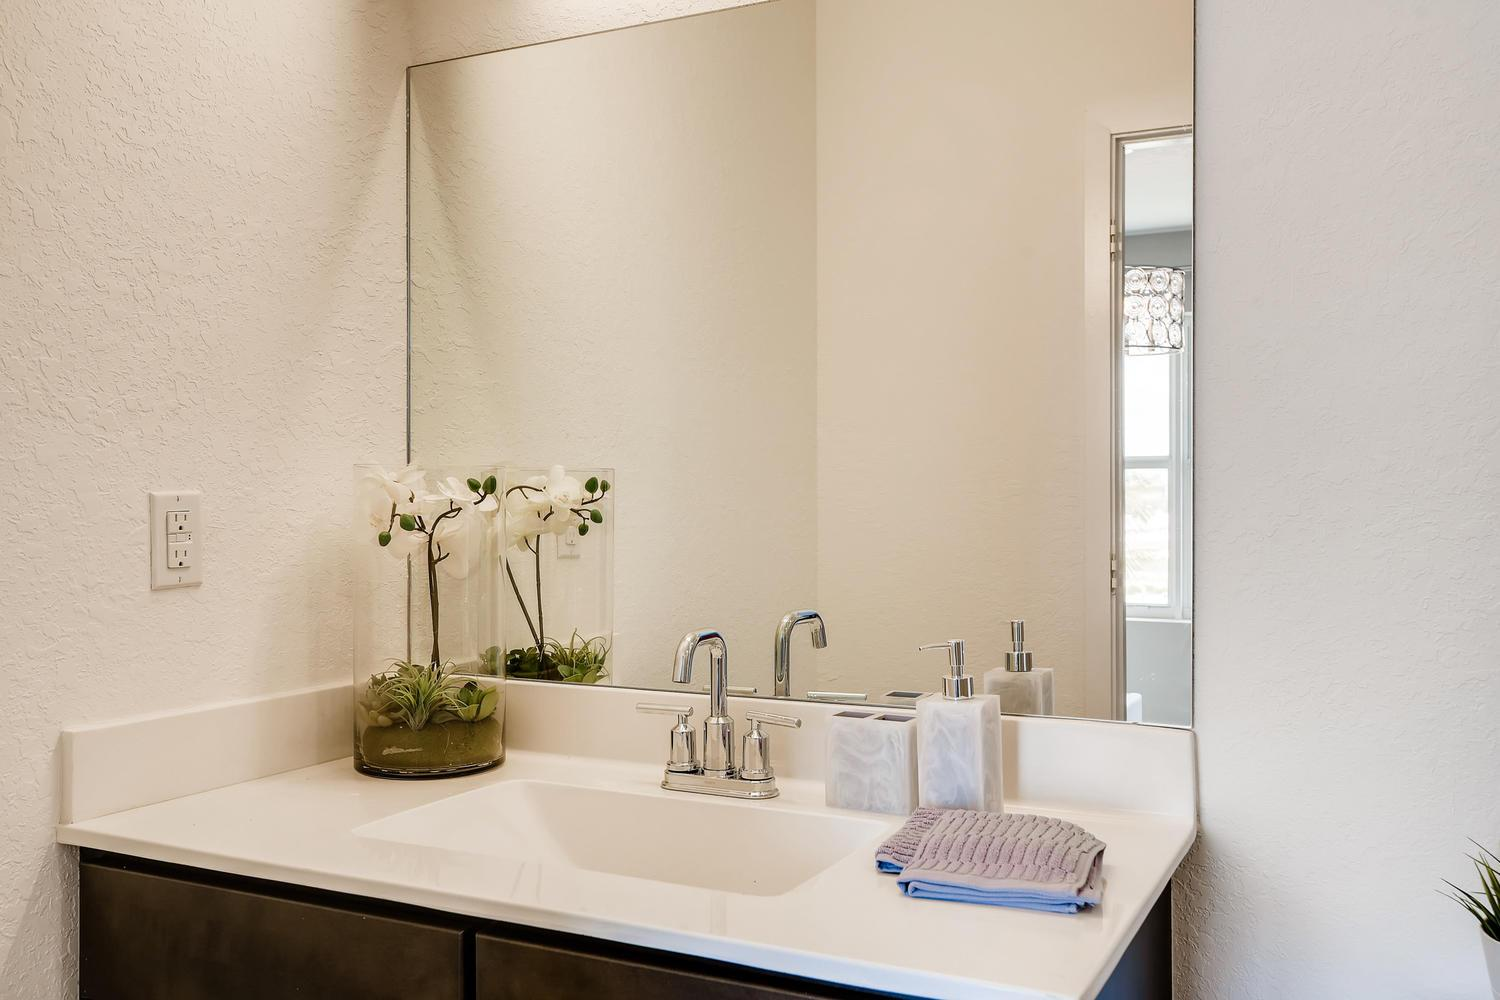 Bathroom featured in the Sapole By D.R. Horton in Miami-Dade County, FL